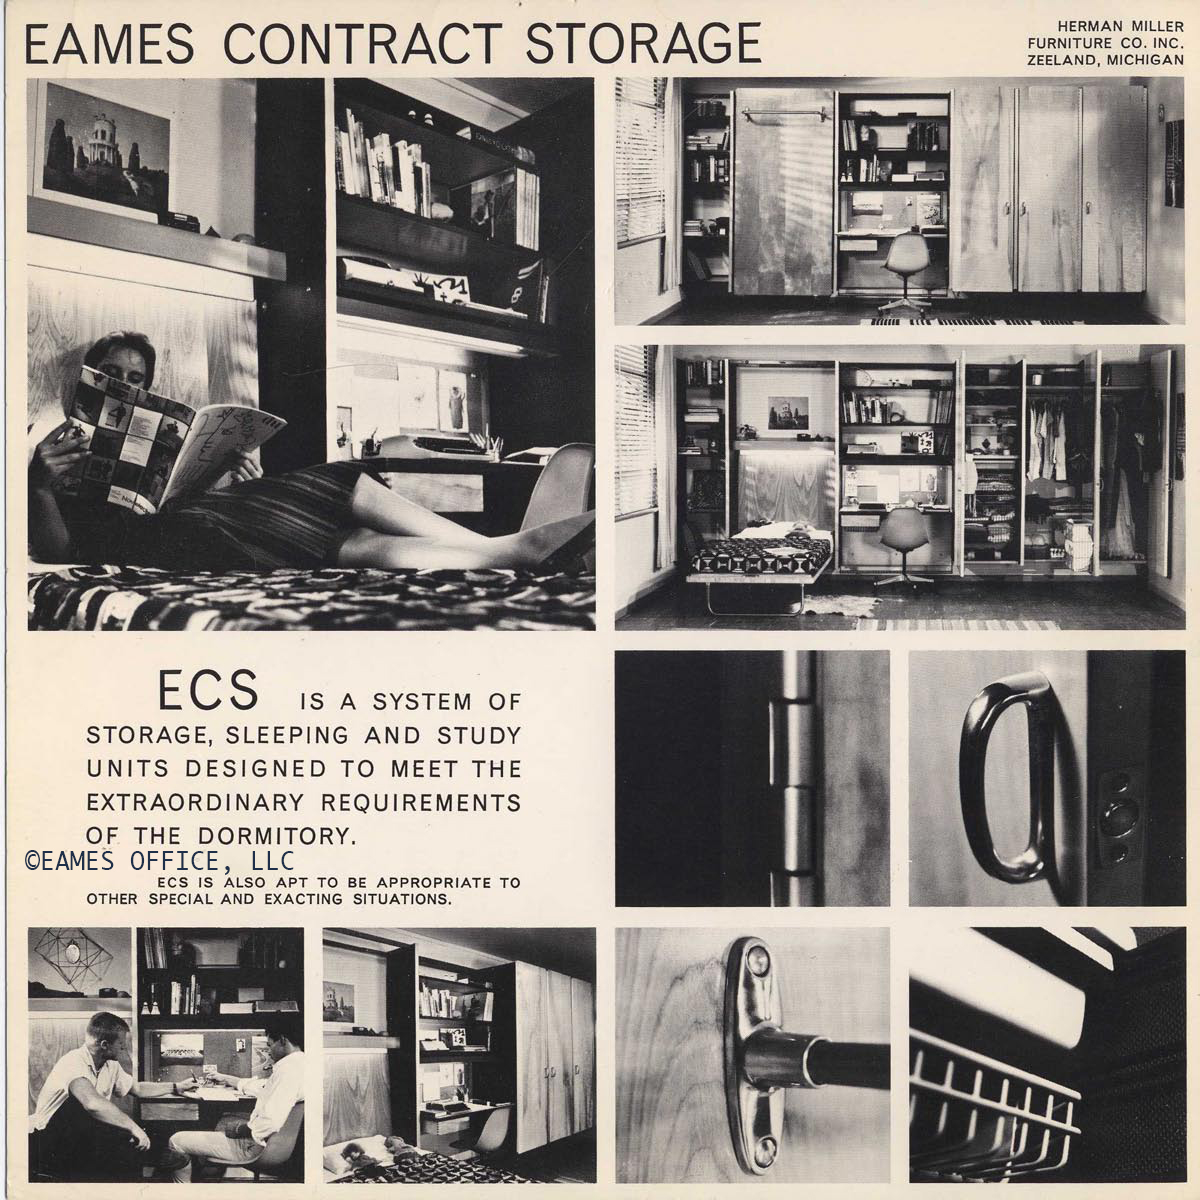 Eames Contract Storage | Eames Office